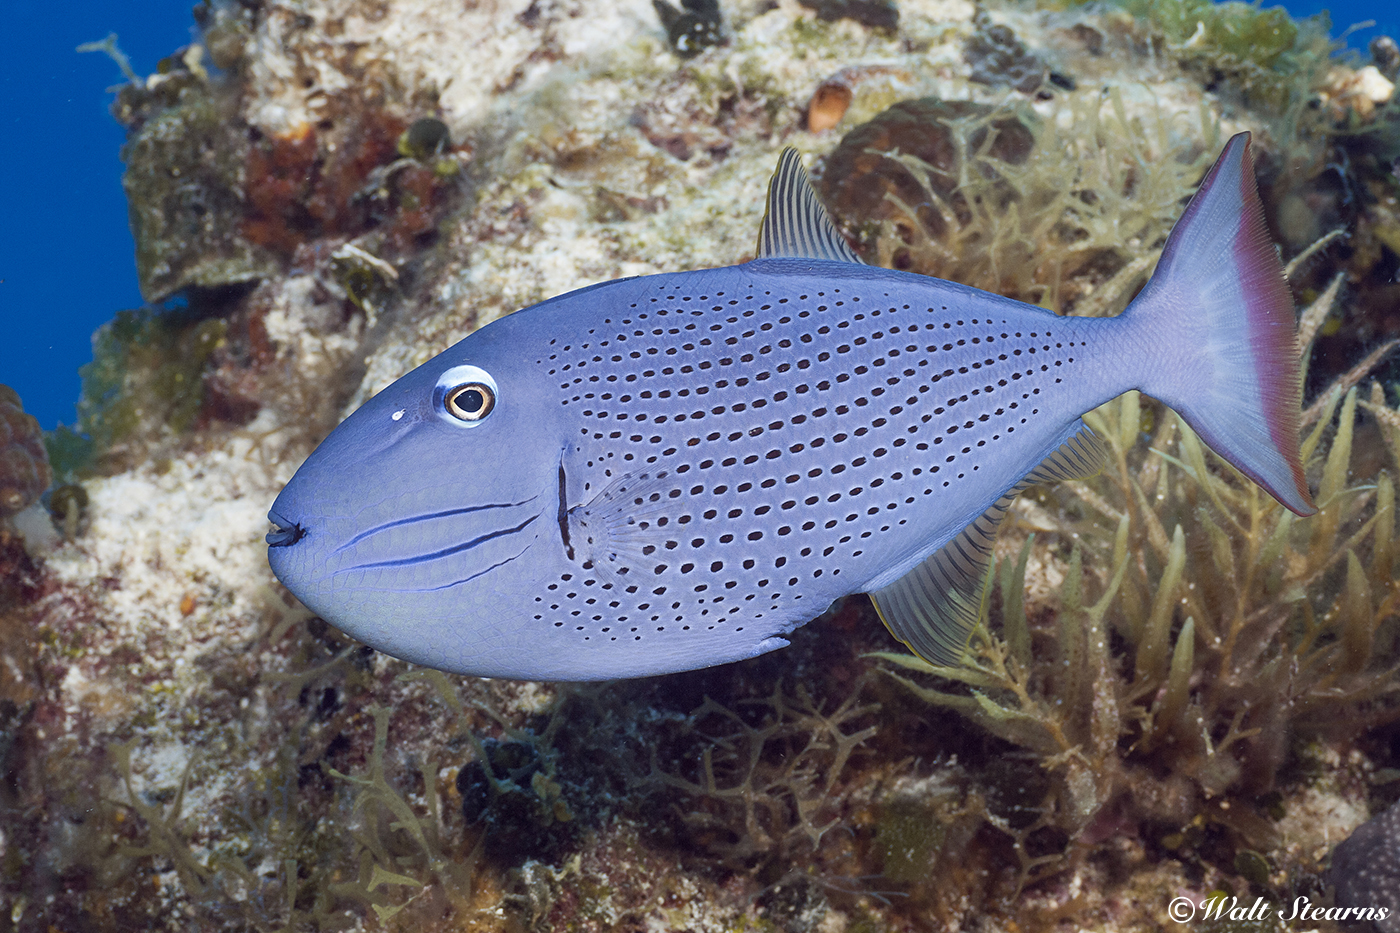 As they mature, sargassum triggerfish move from floating weed patches onto reefs, where they can usually be found in depth from 70 feet on down to 200-plus.